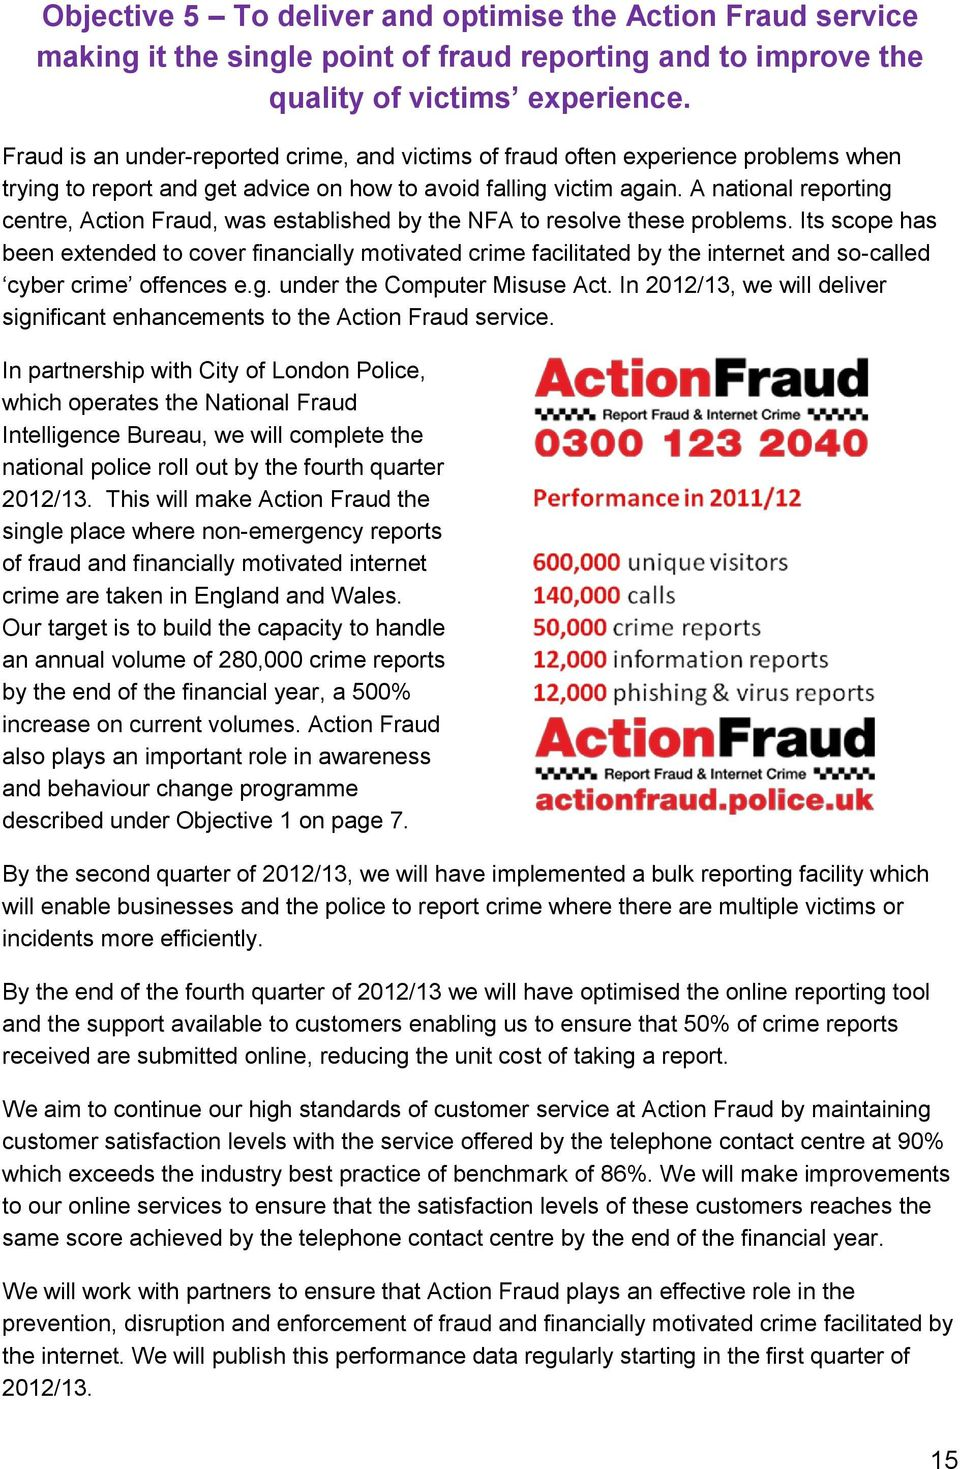 A national reporting centre, Action Fraud, was established by the NFA to resolve these problems.